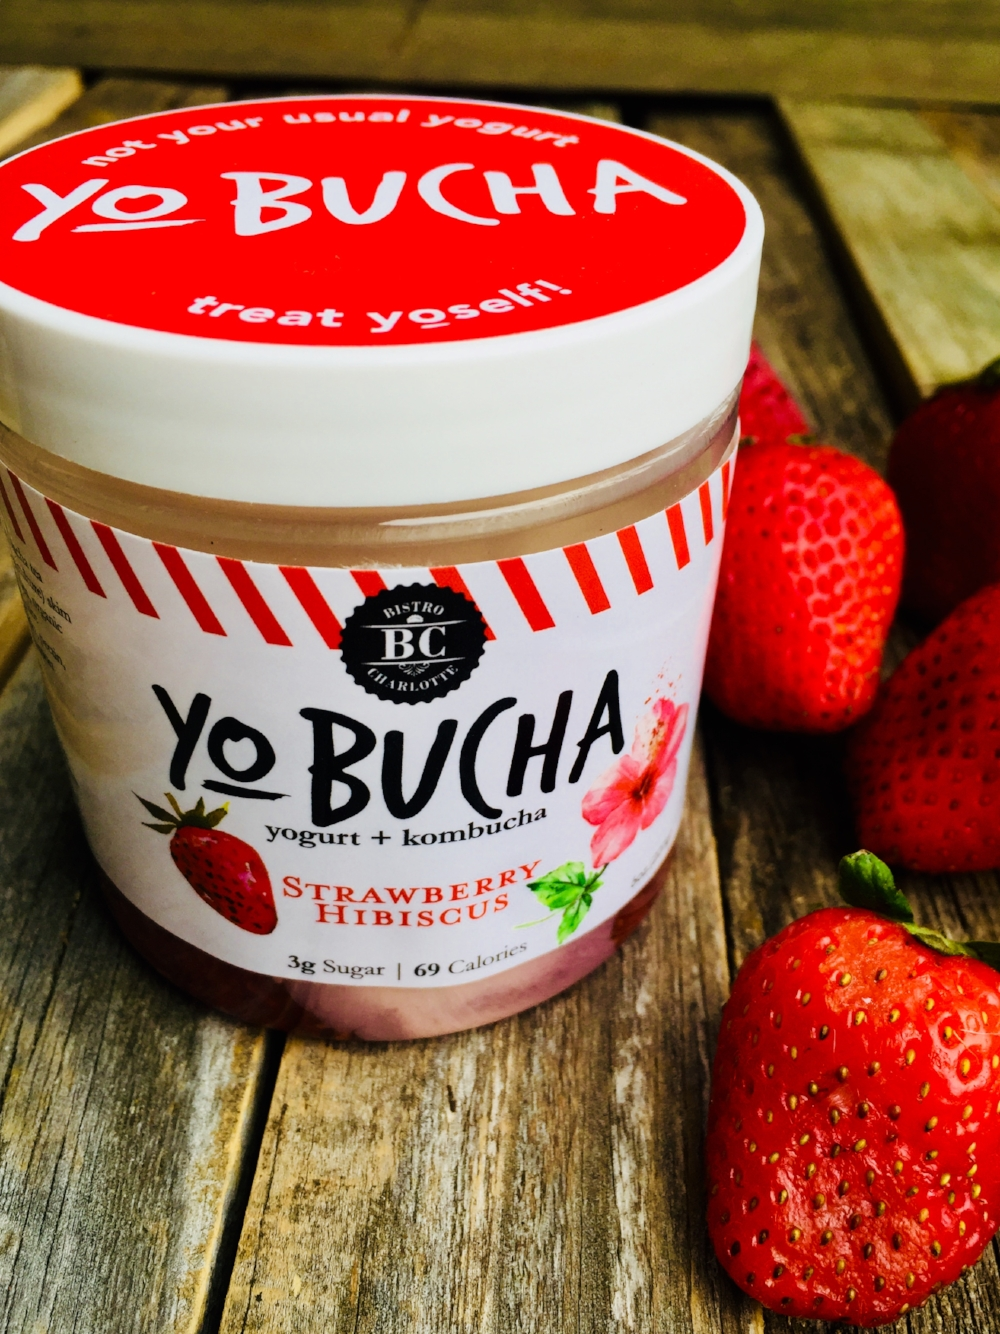 Strawberry Hibiscus Yo-Bucha - A favorite among kids! Sweet strawberry blends perfectly with the flavor of floral hibiscus and tart kombucha tea. Tastes great for breakfast topped off with some granola or as as a healthy alternative for dessert.